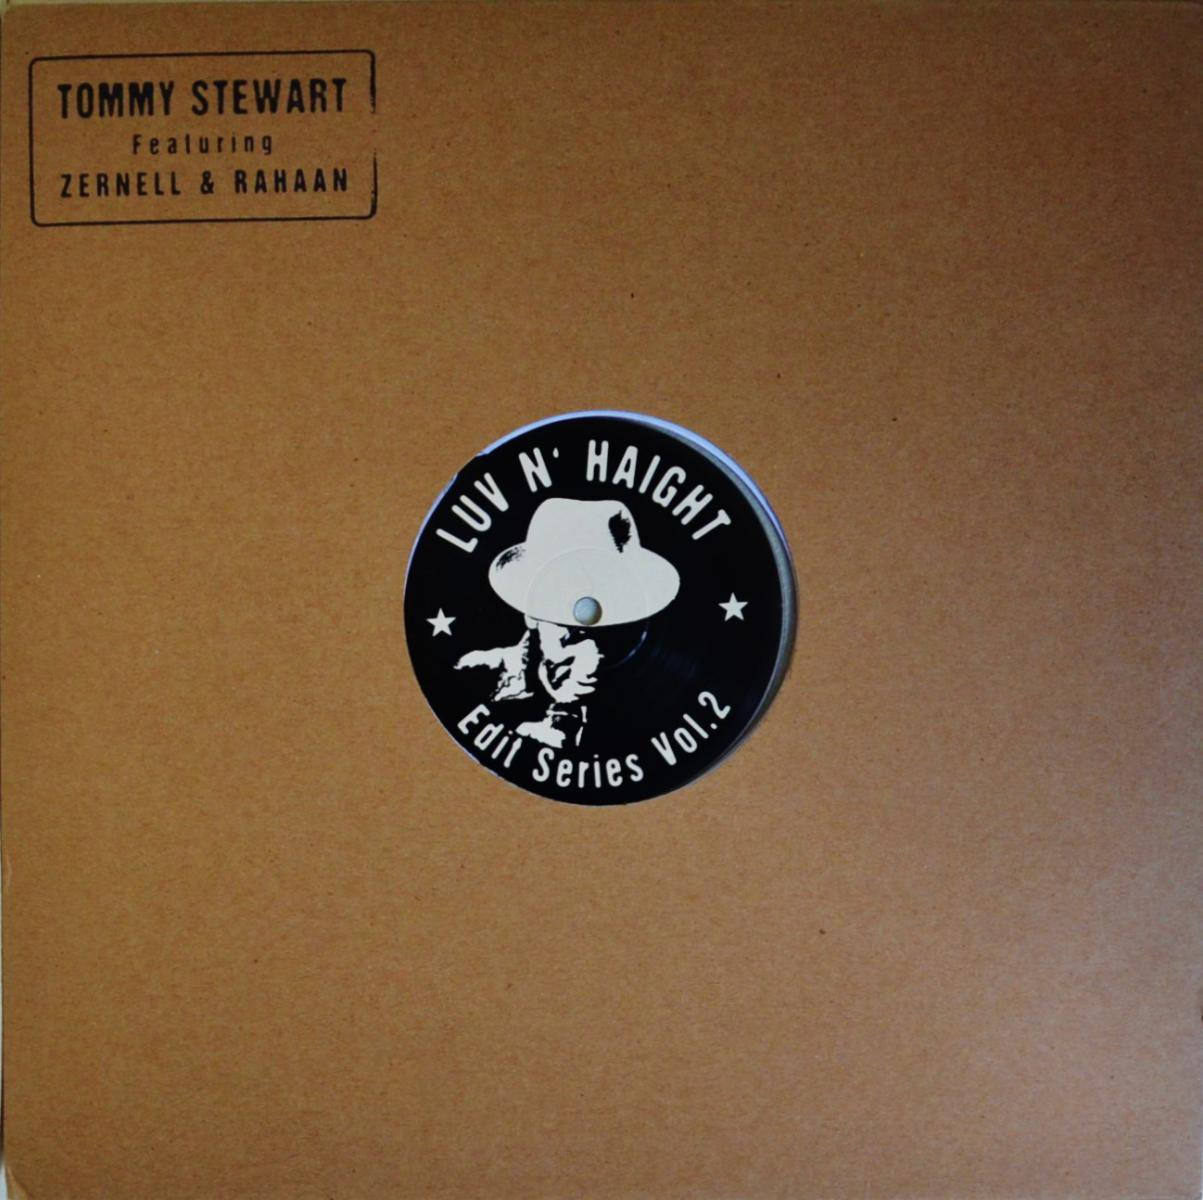 TOMMY STEWART / FEAT RAHAAN & ZERNELL / PRACTIVE WHAT YOU PREACH (LUV N' HAIGHT EDIT SERIES VOL.2)